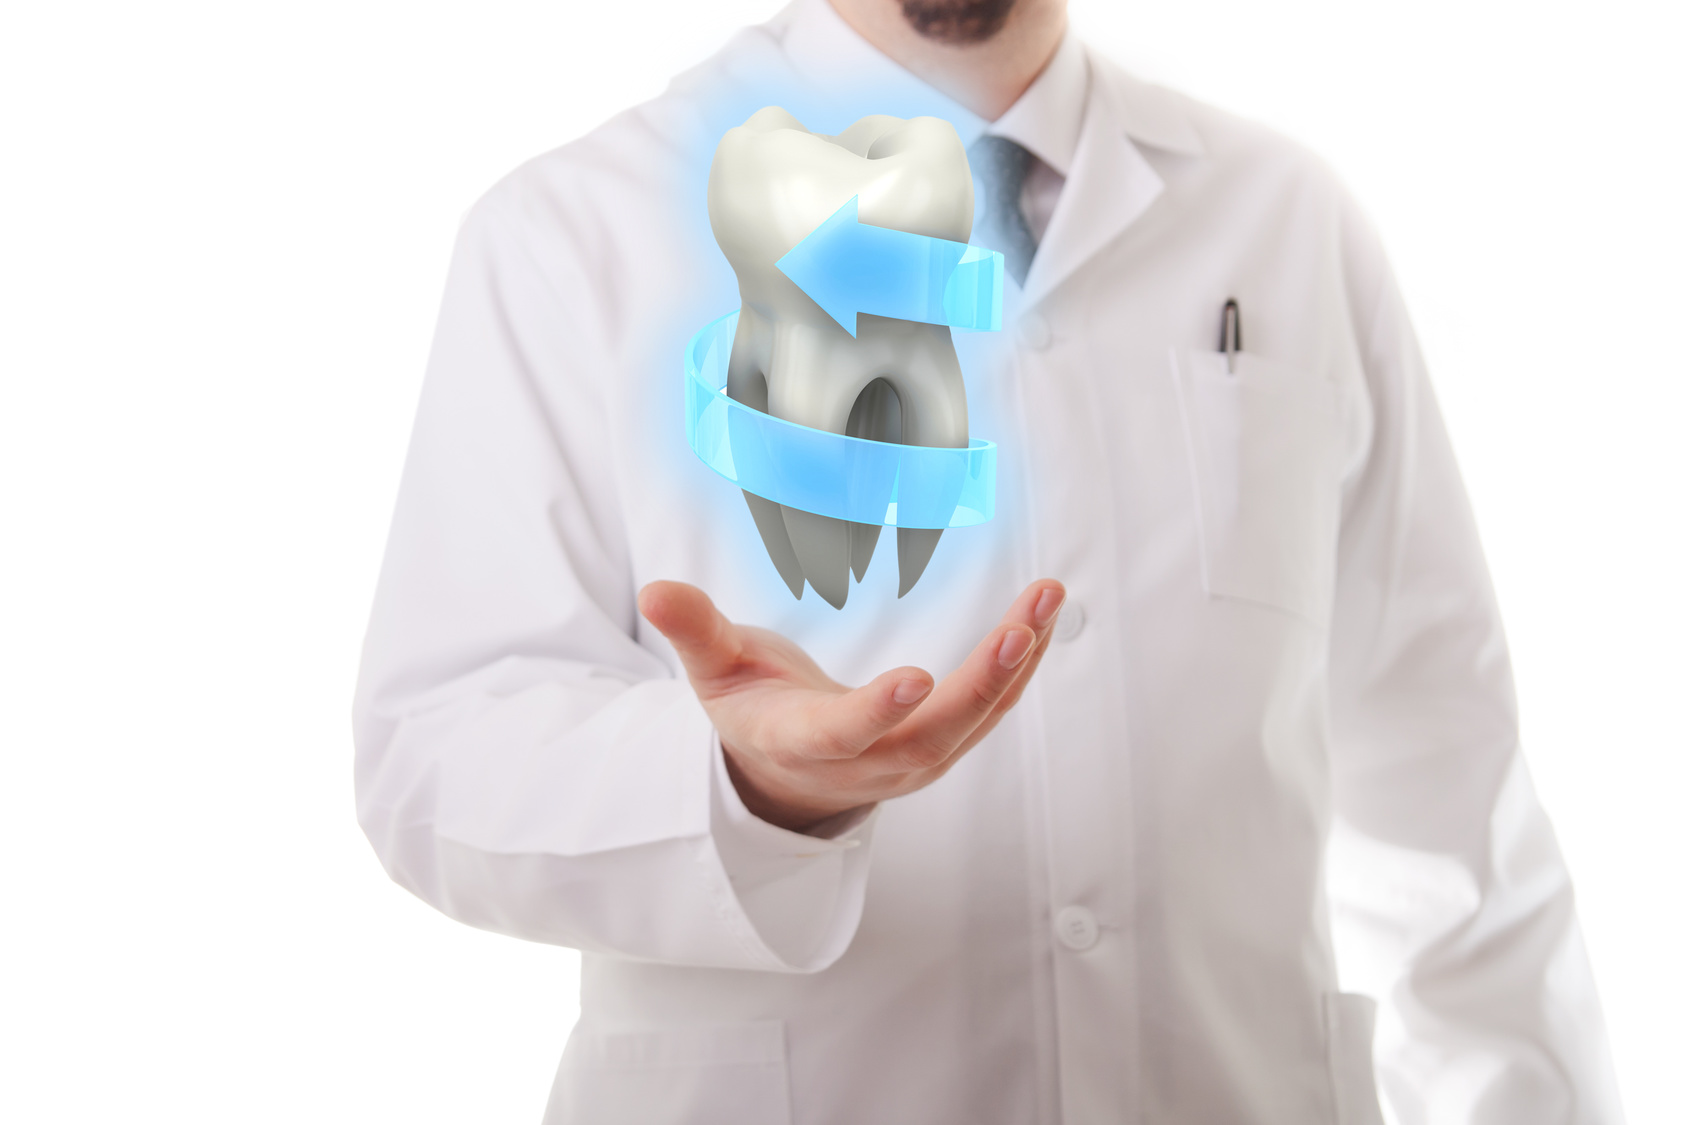 Fluoride is an important part of a healthy oral hygiene regimen.